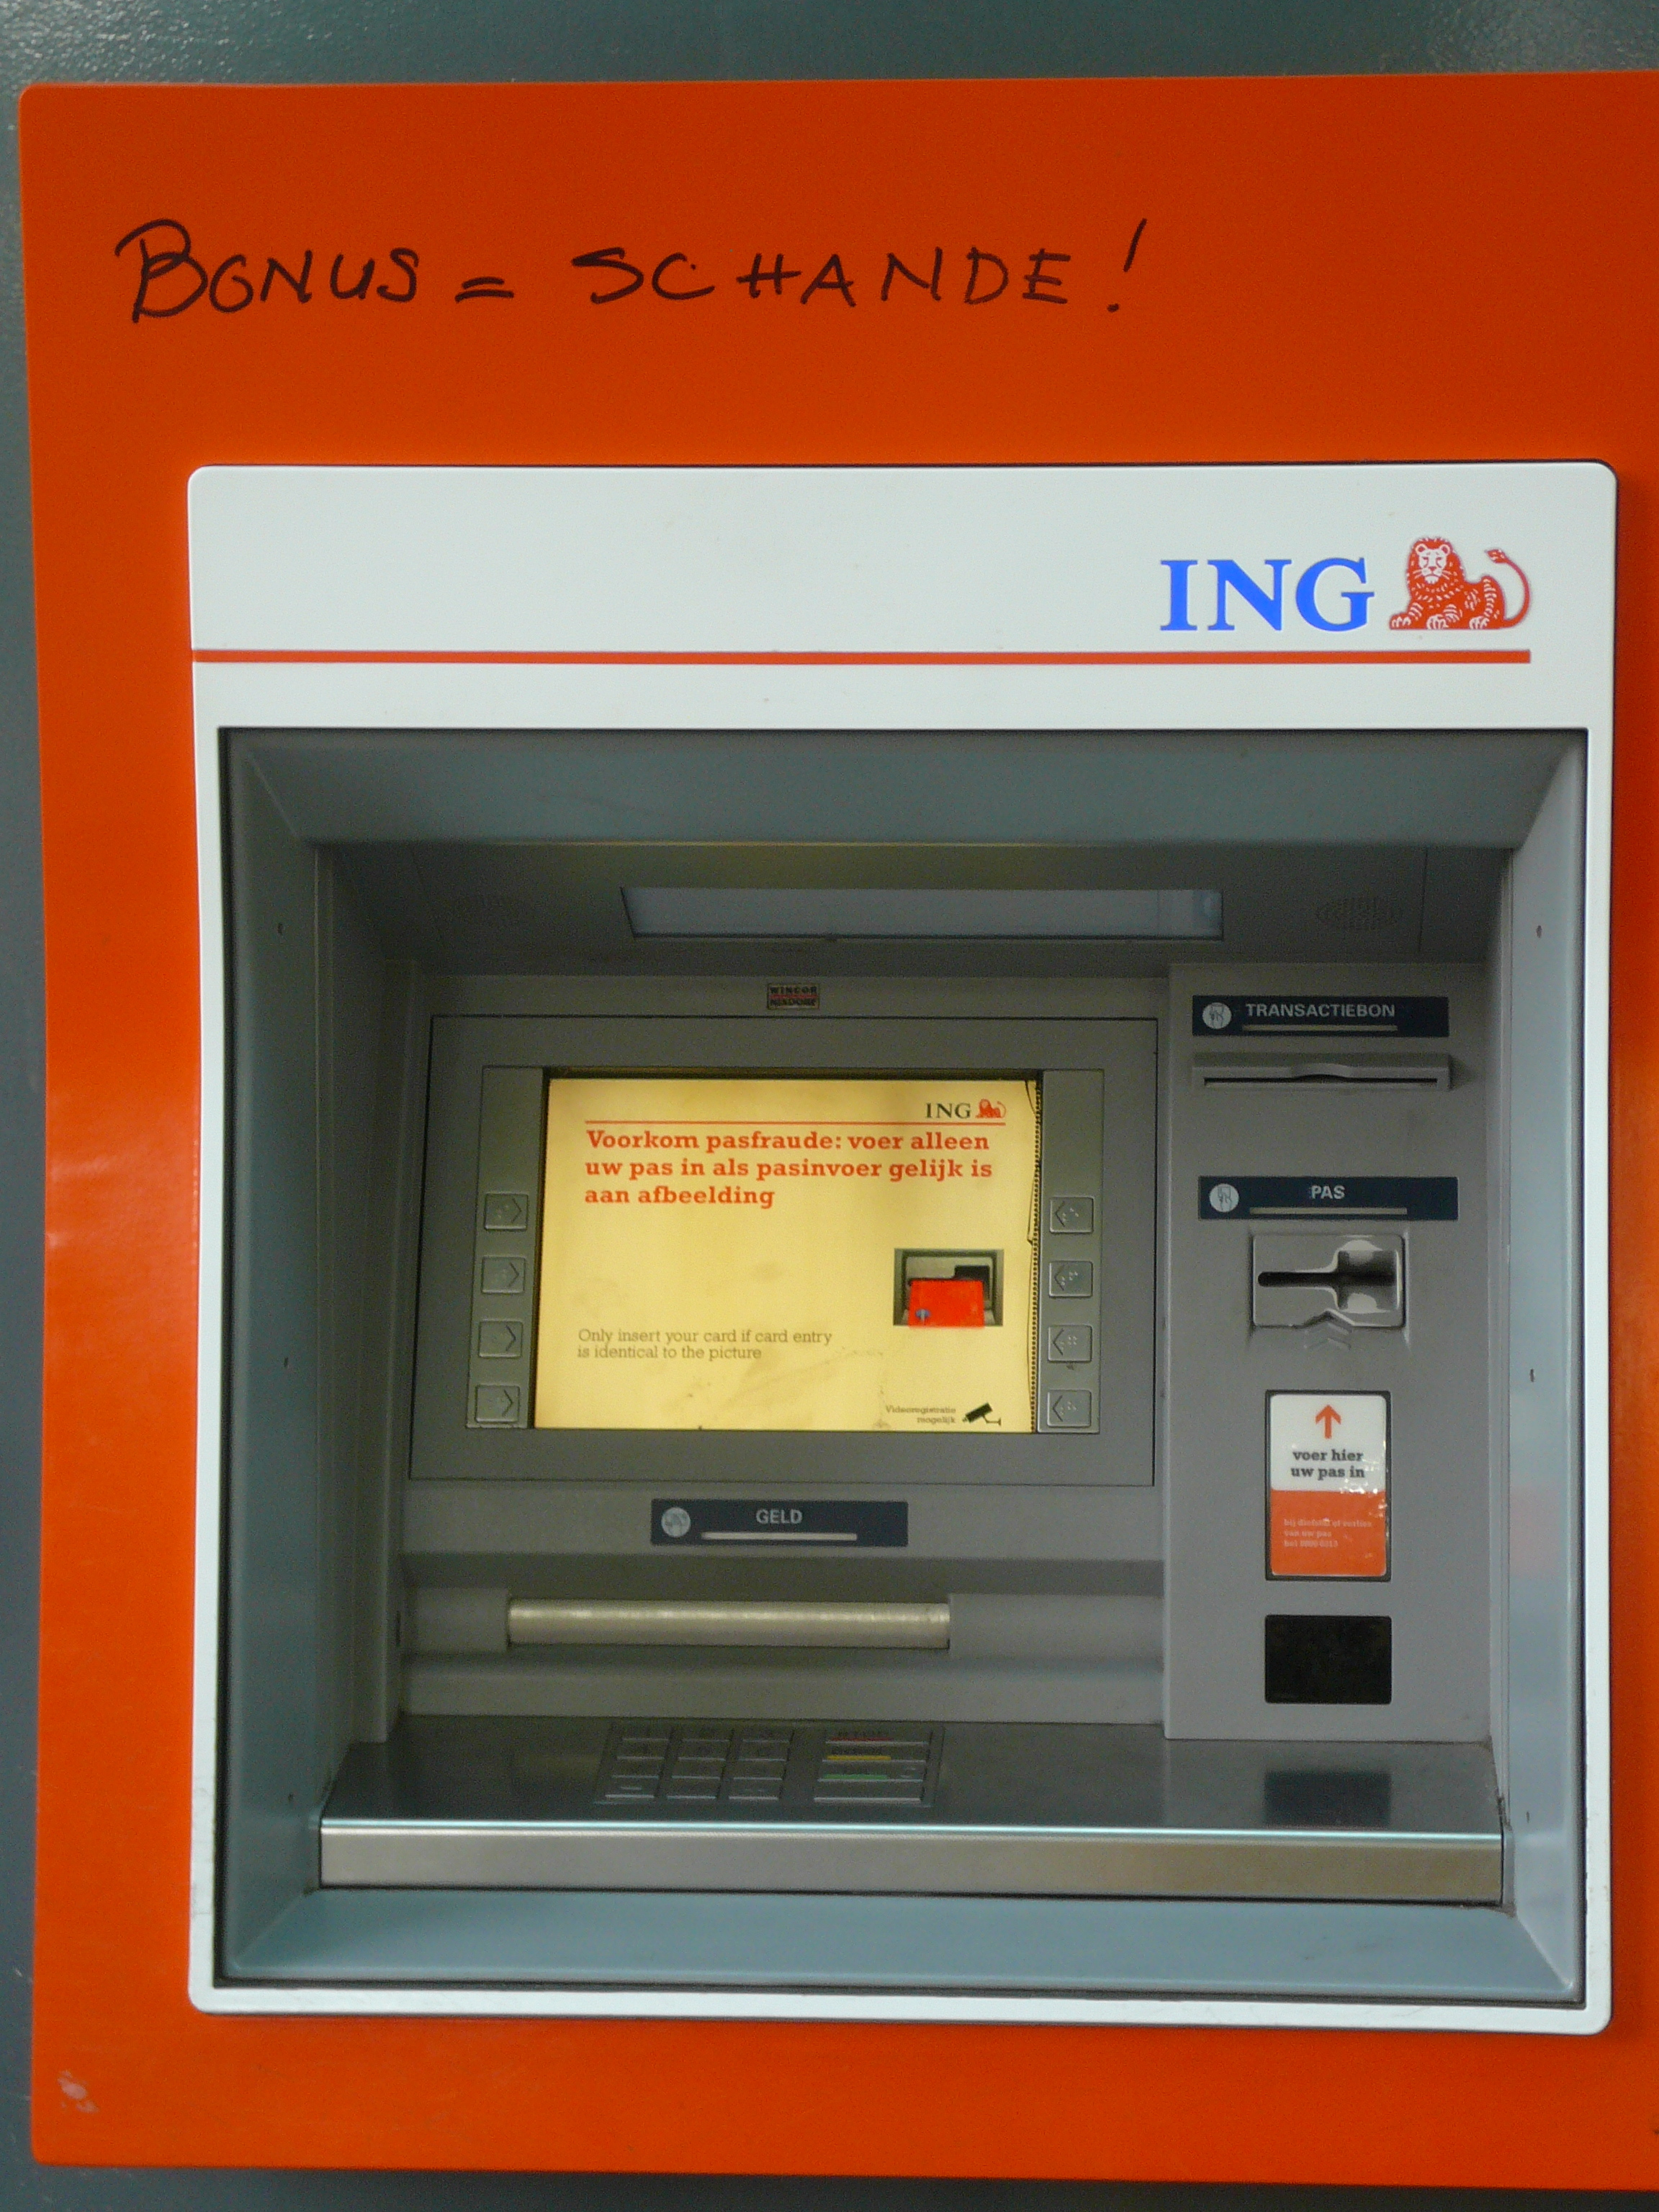 Ing Pinautomaat Dorpspomp Overvecht Blog Over Verhalende Journalistiek